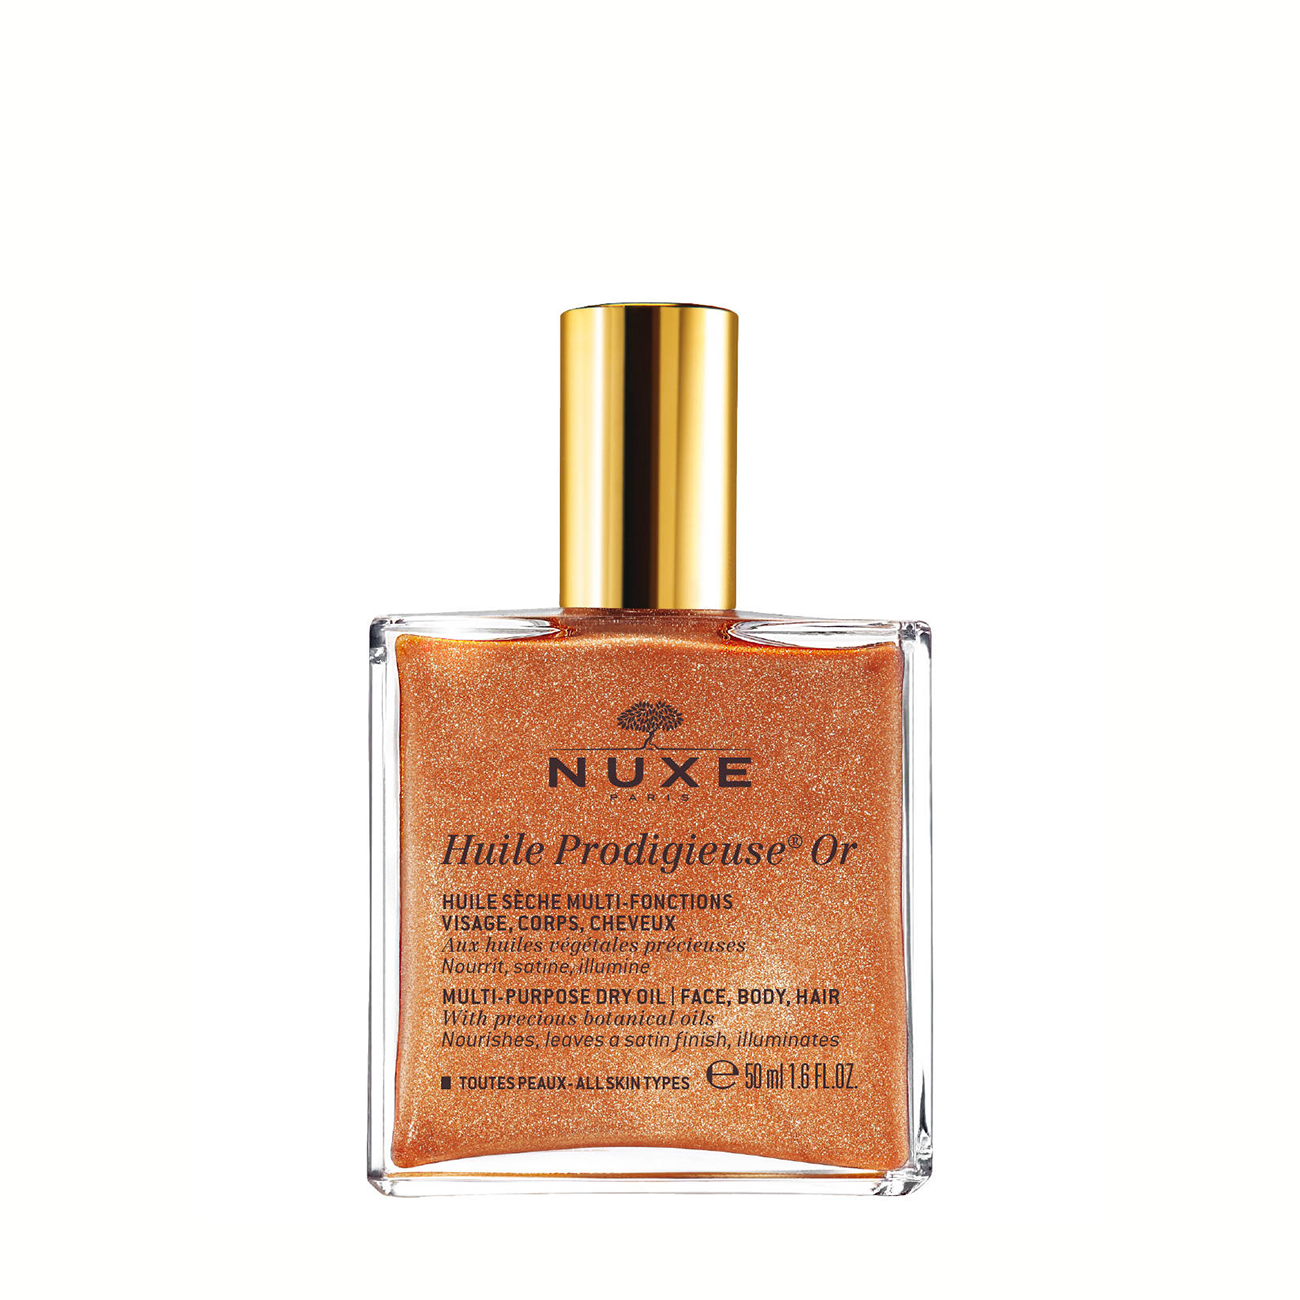 Huile Prodigieuse® Or 50ml Nuxe imagine 2021 bestvalue.eu